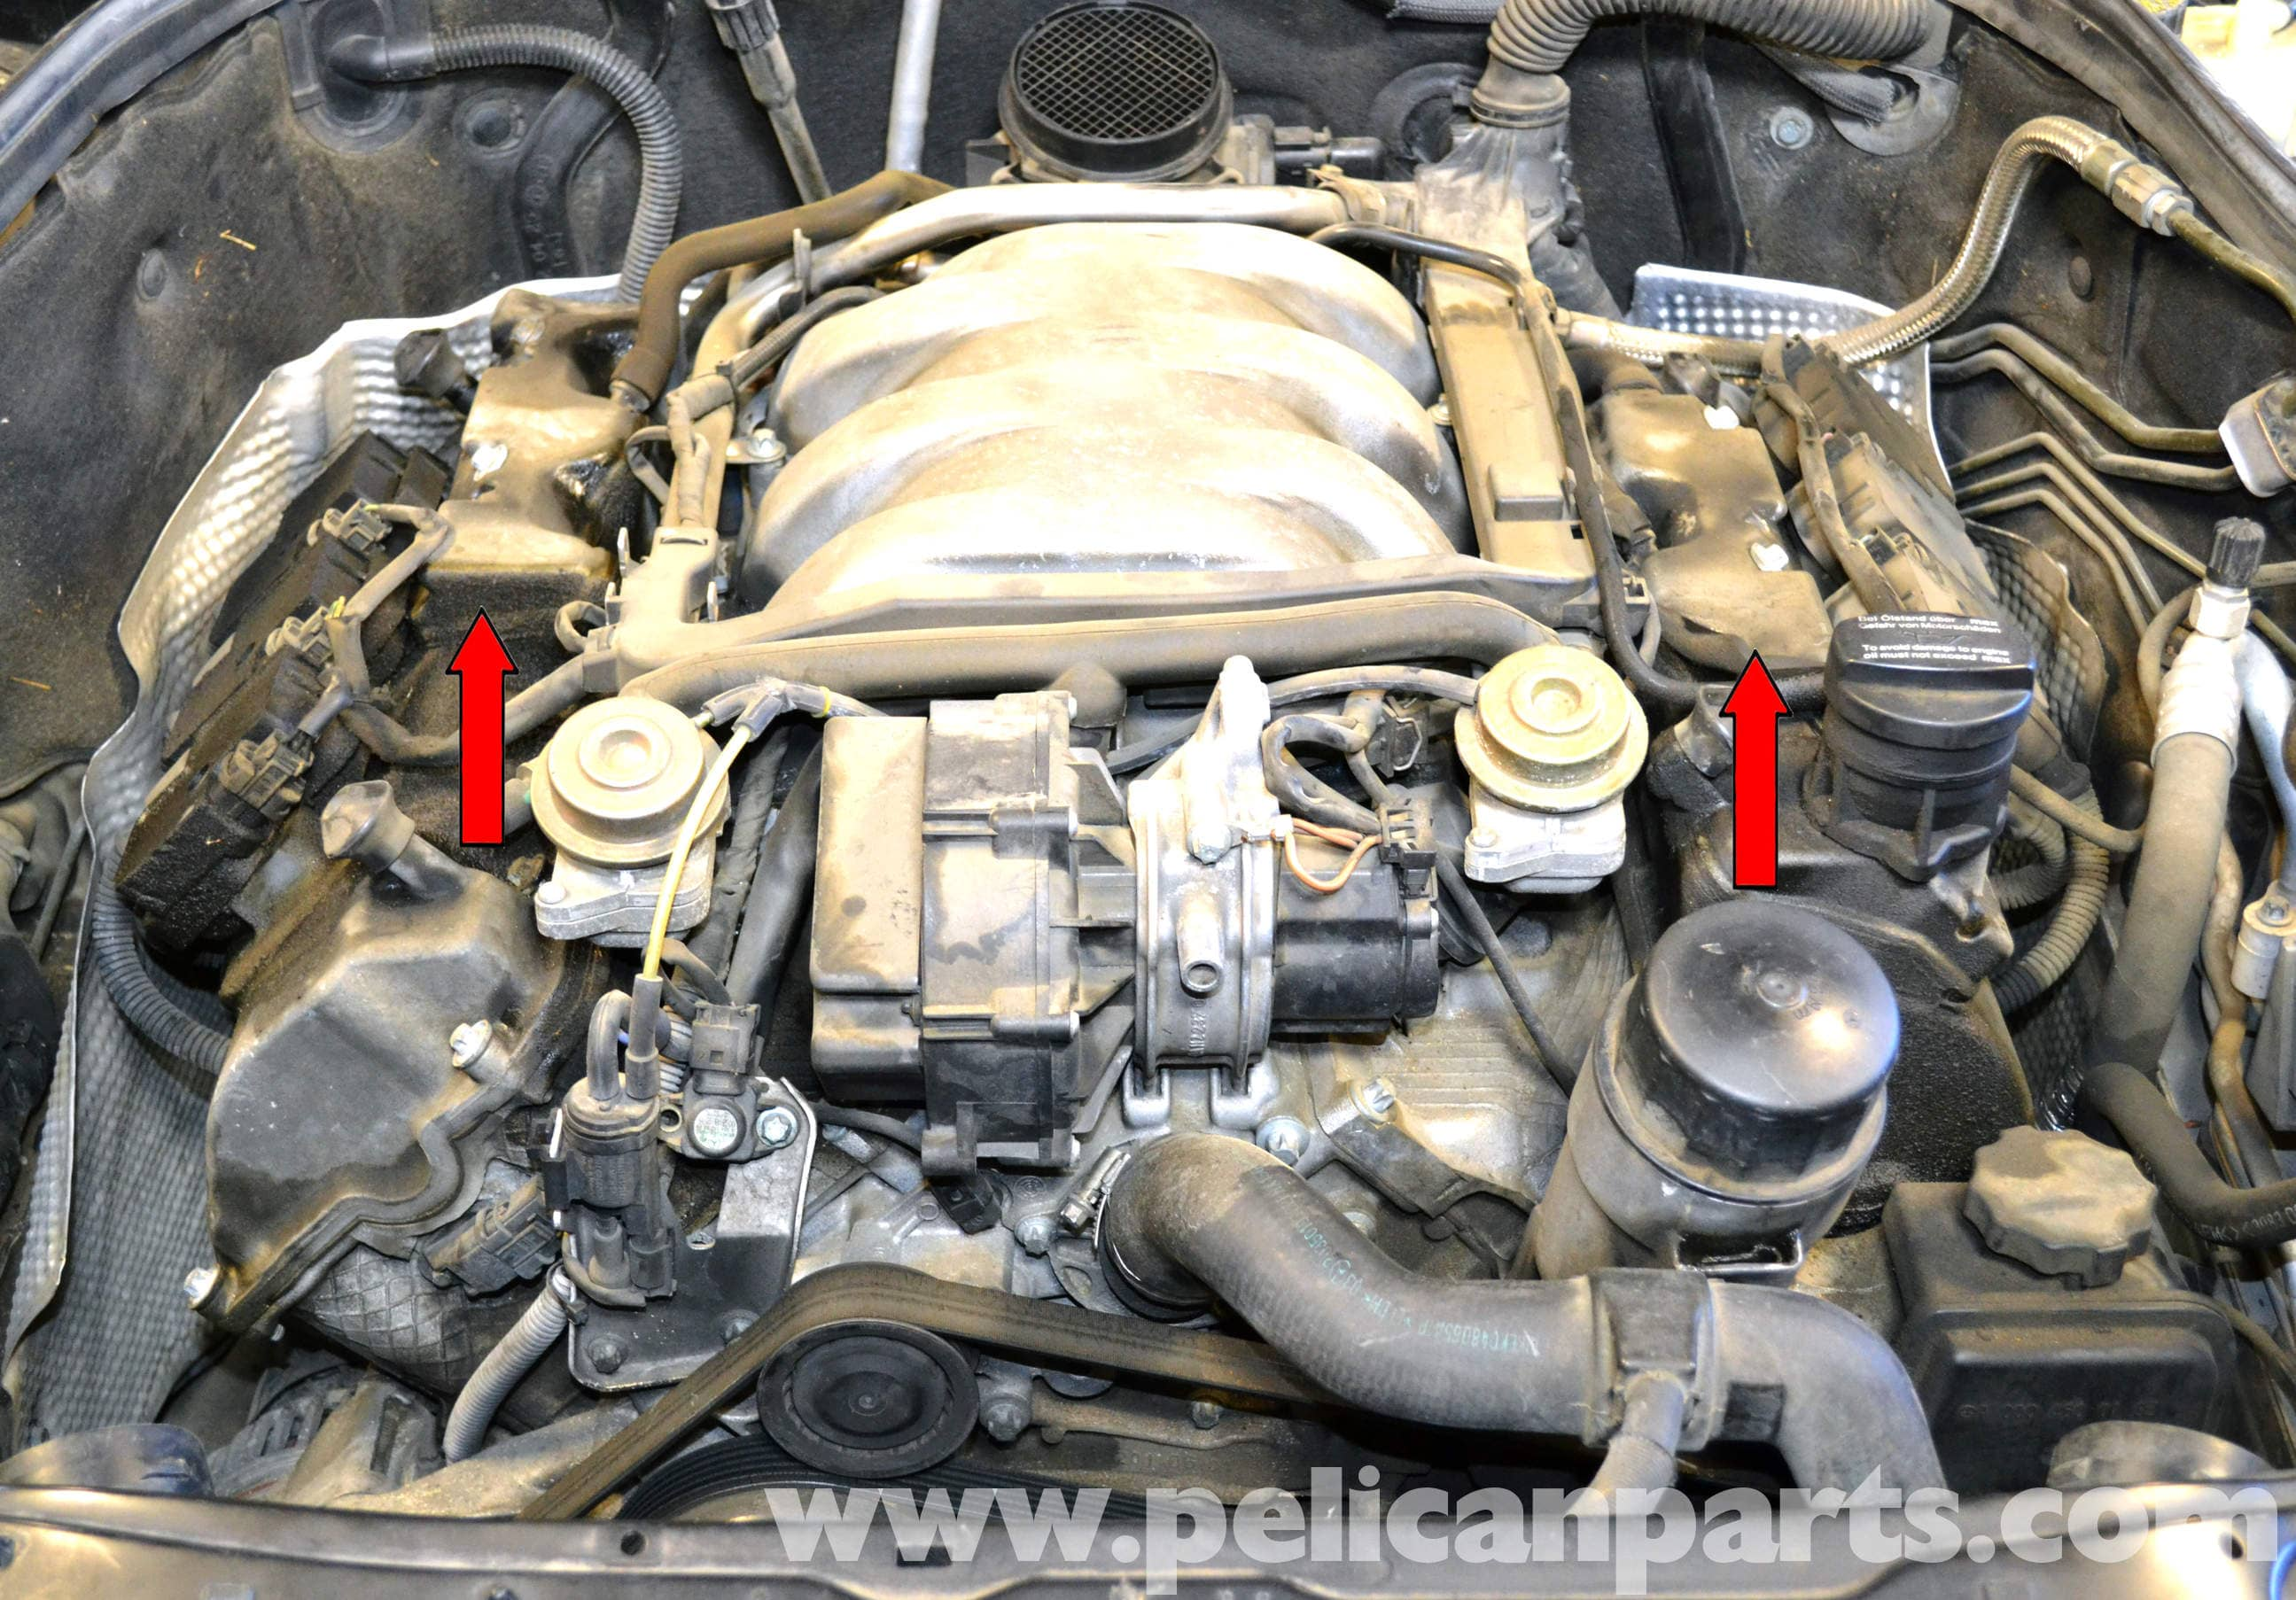 Mercedes 3 5l Engine Diagram Guide And Troubleshooting Of Wiring Nissan Rogue Library Rh Webseiten Archiv De 235 Chevy Oiling System V6 35